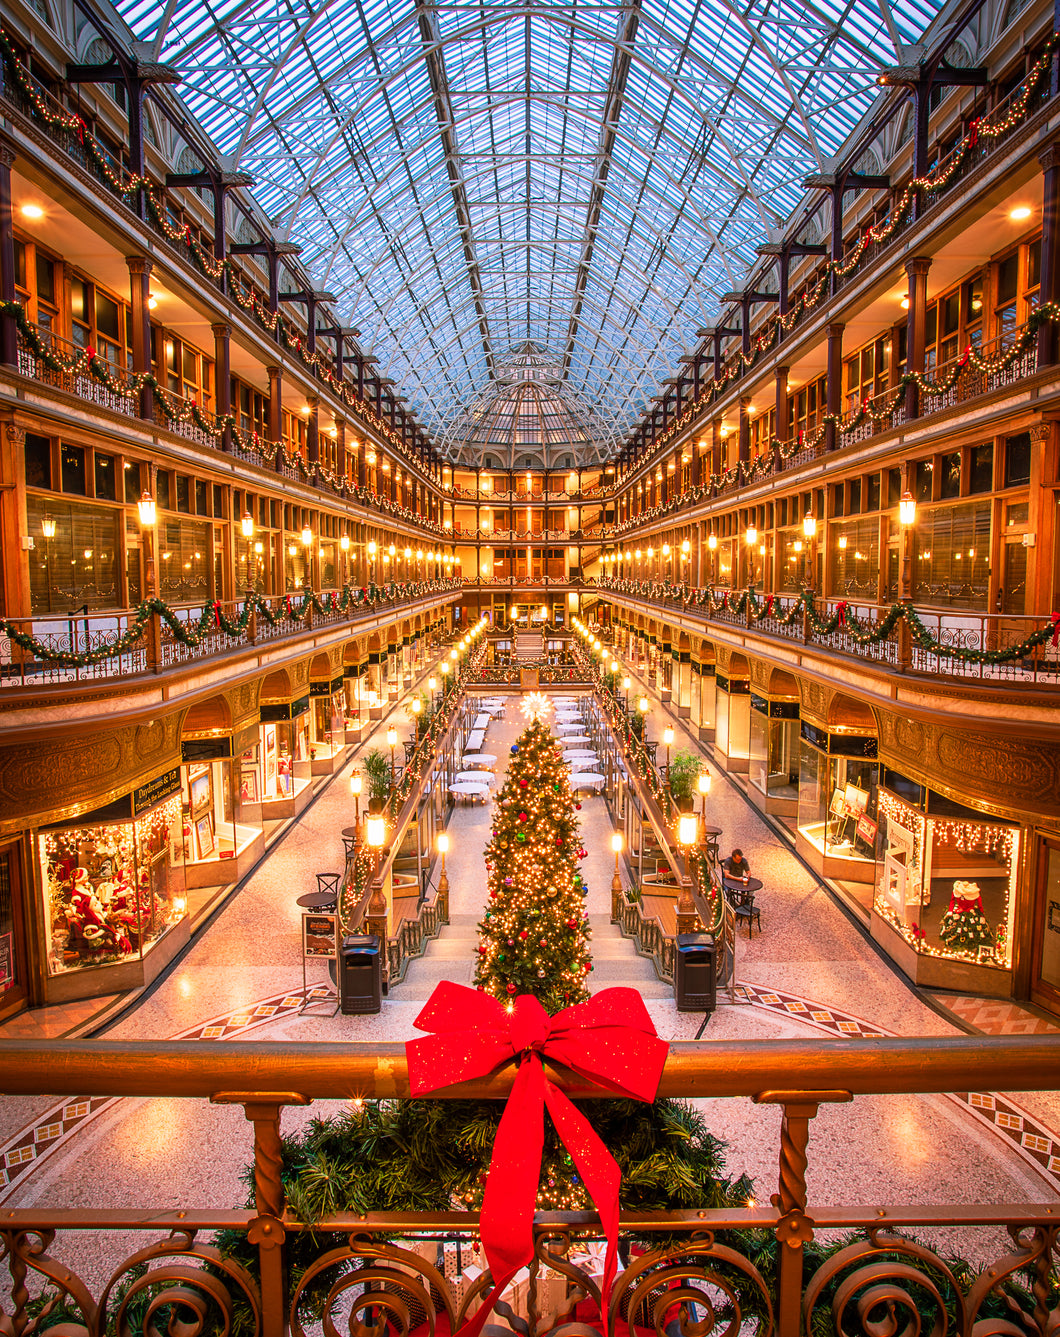 'Old Arcade at Christmas'